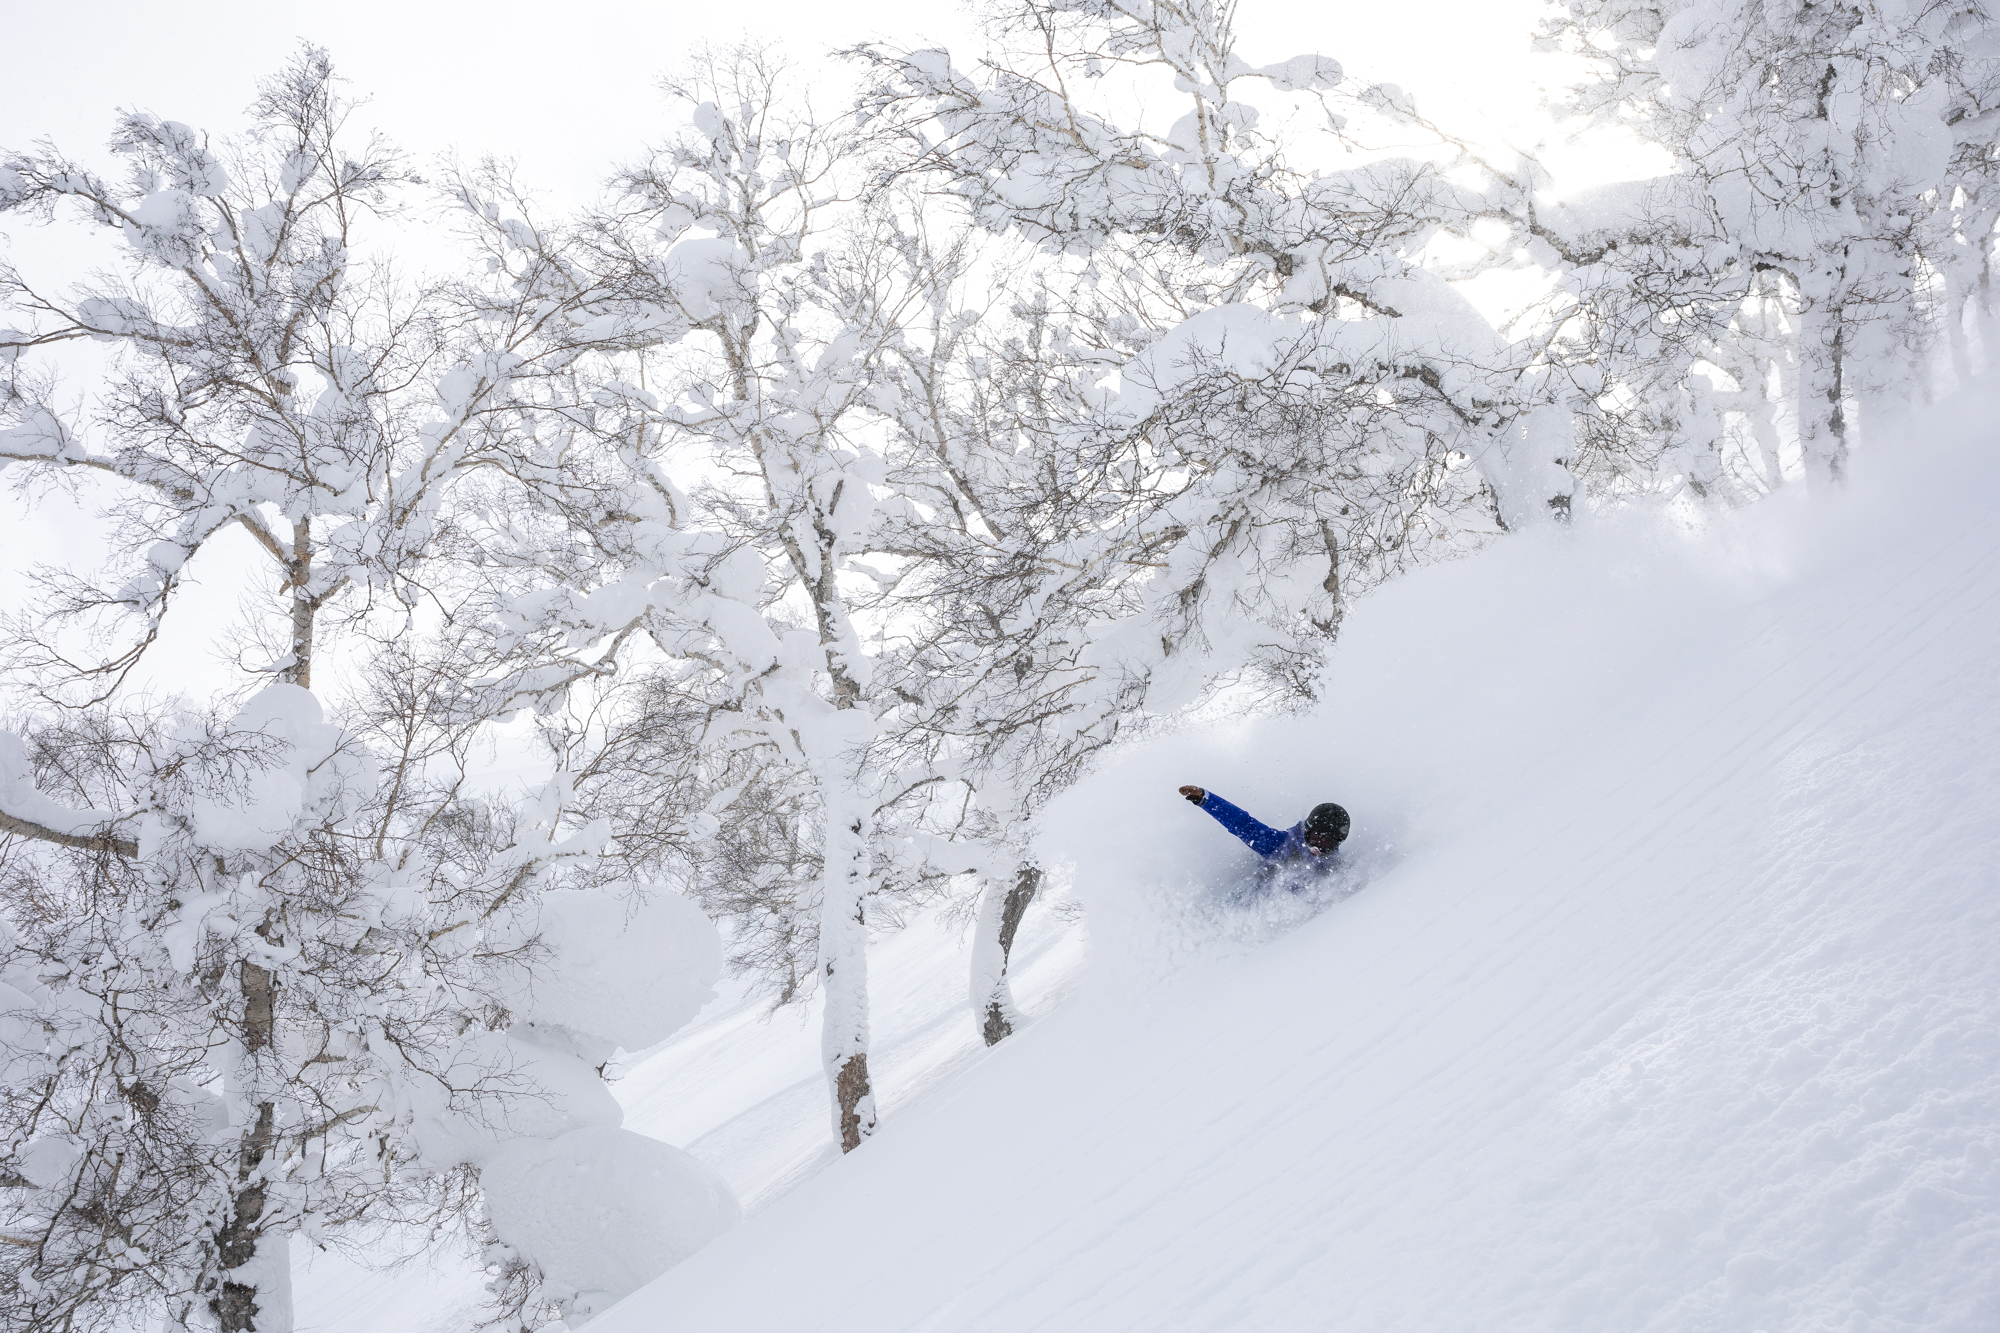 Enjoying the universal language of deep pow Japan backcountry! Photo by Ben Girardi.